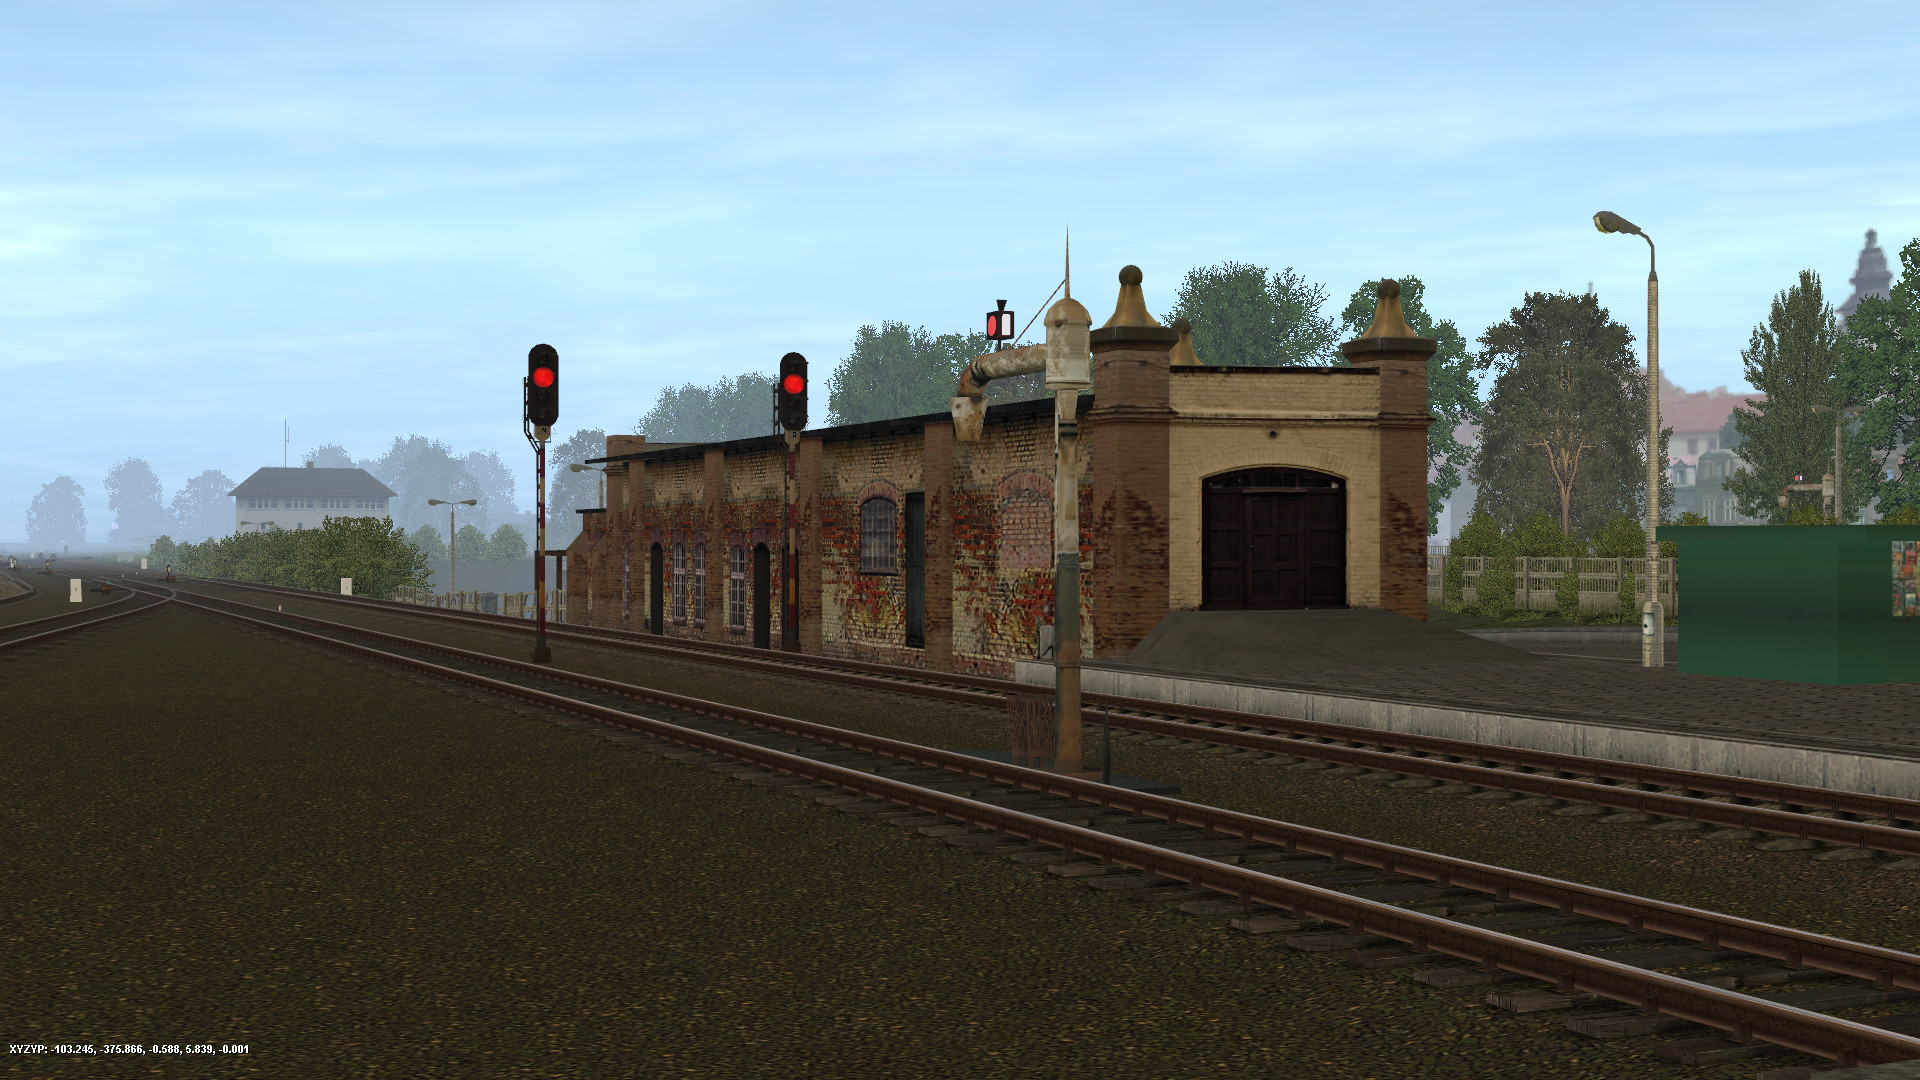 adamstan-trainz.pl/downloads/images/adamstan_20171030_0003.jpg